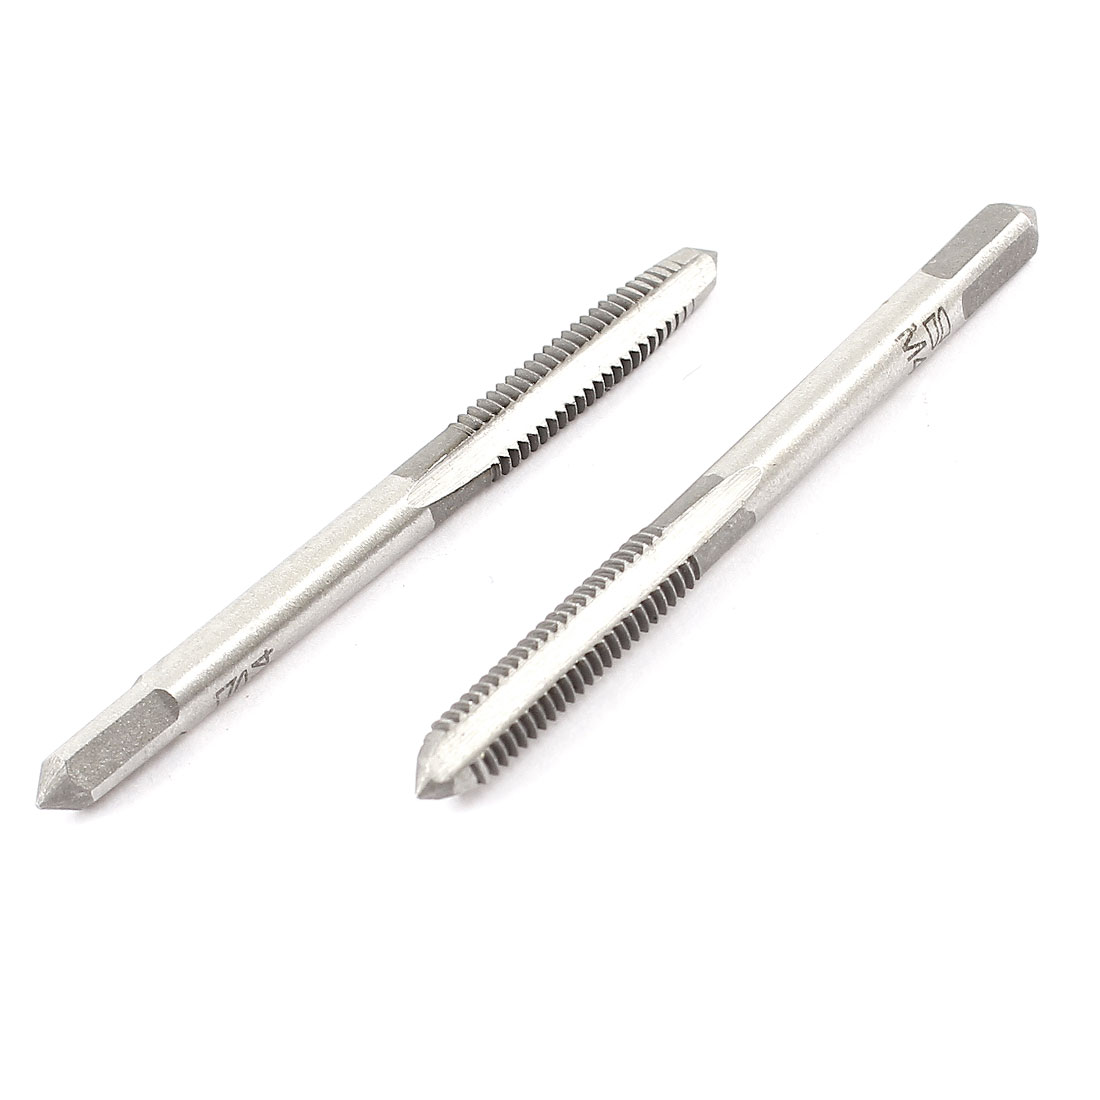 2 Pcs High Carbon Steel 4mm Screw Thread Metric Taps Hand Tool